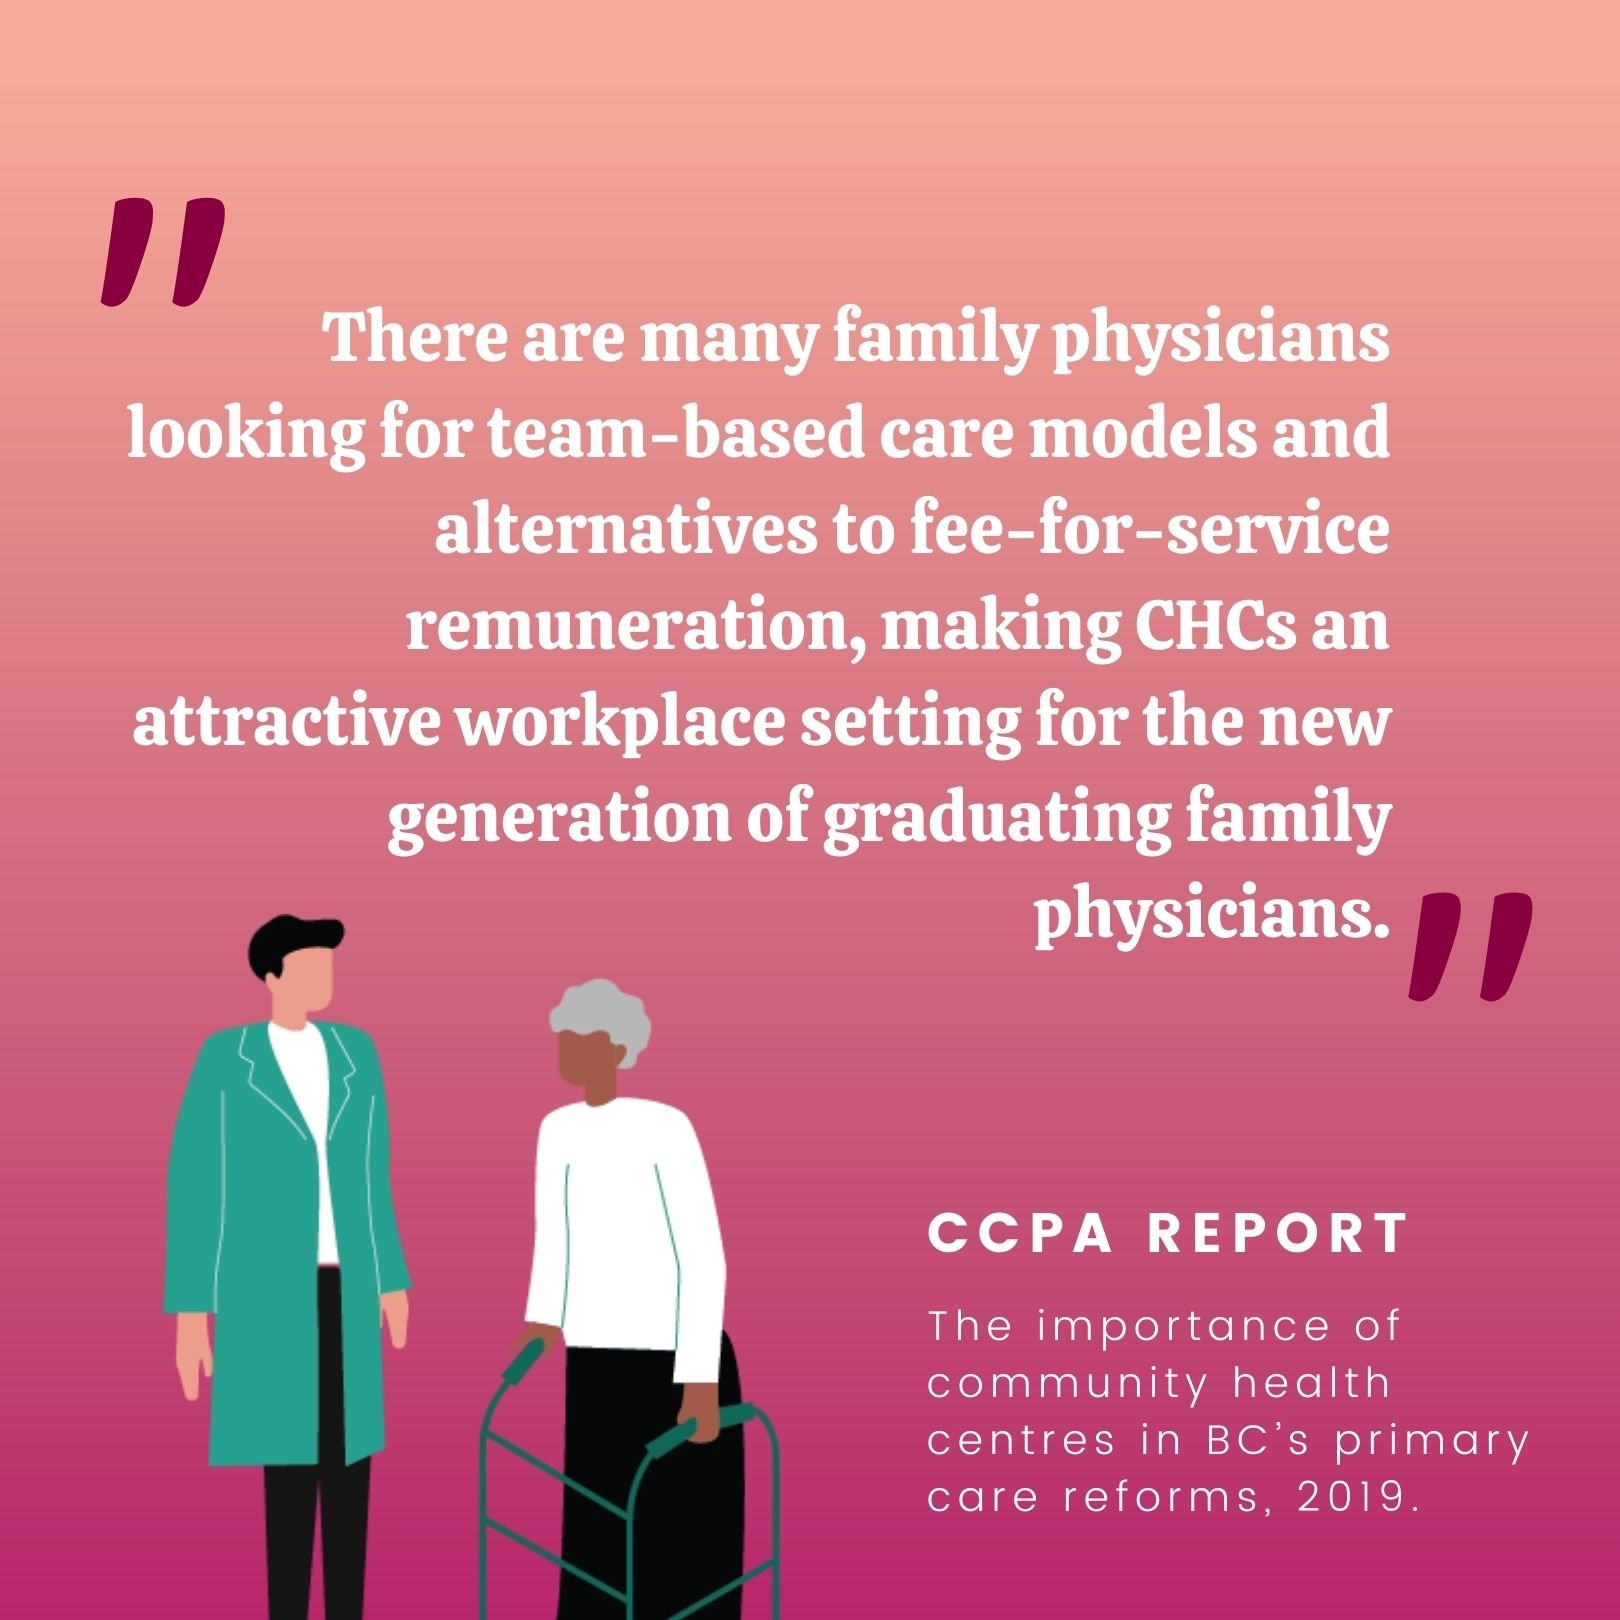 There are many family physicians looking for team-based care models and alternatives to fee-for-service remuneration, making CHCs an attractive workplace setting for the new generation of graduating family physicians.